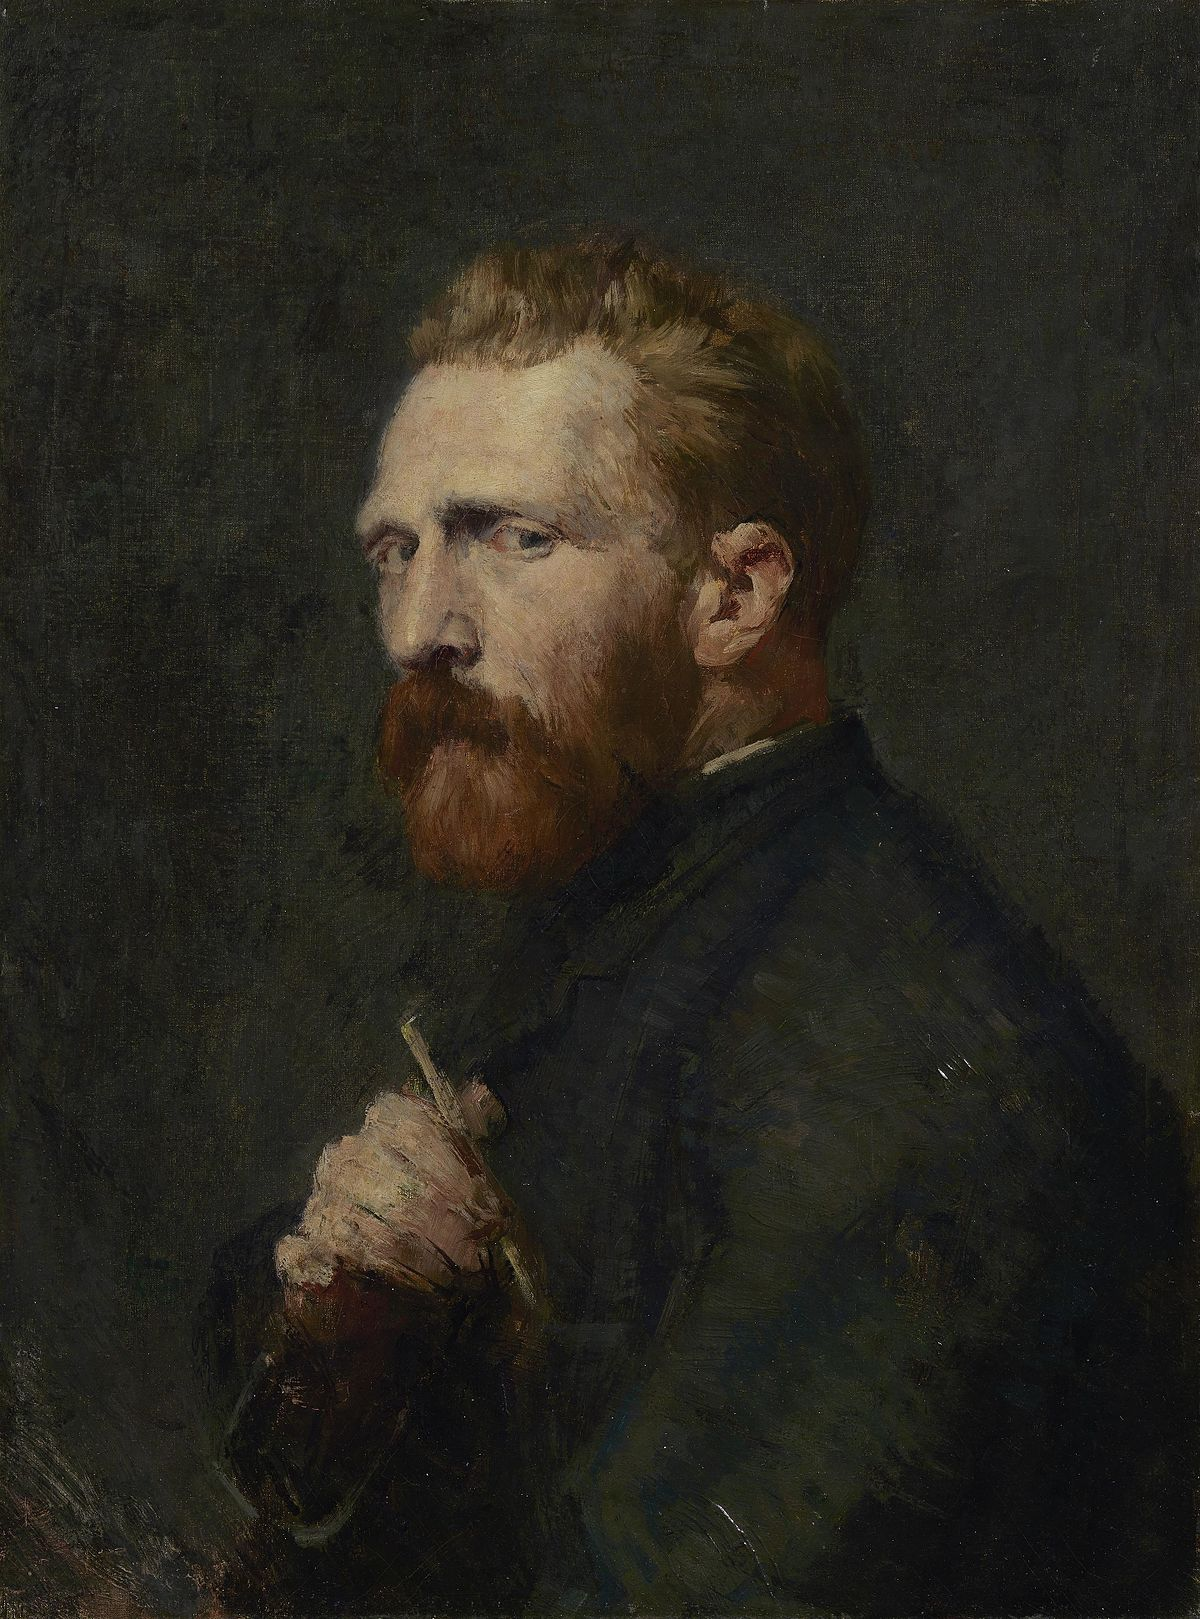 Vincent van Gogh Russell painting